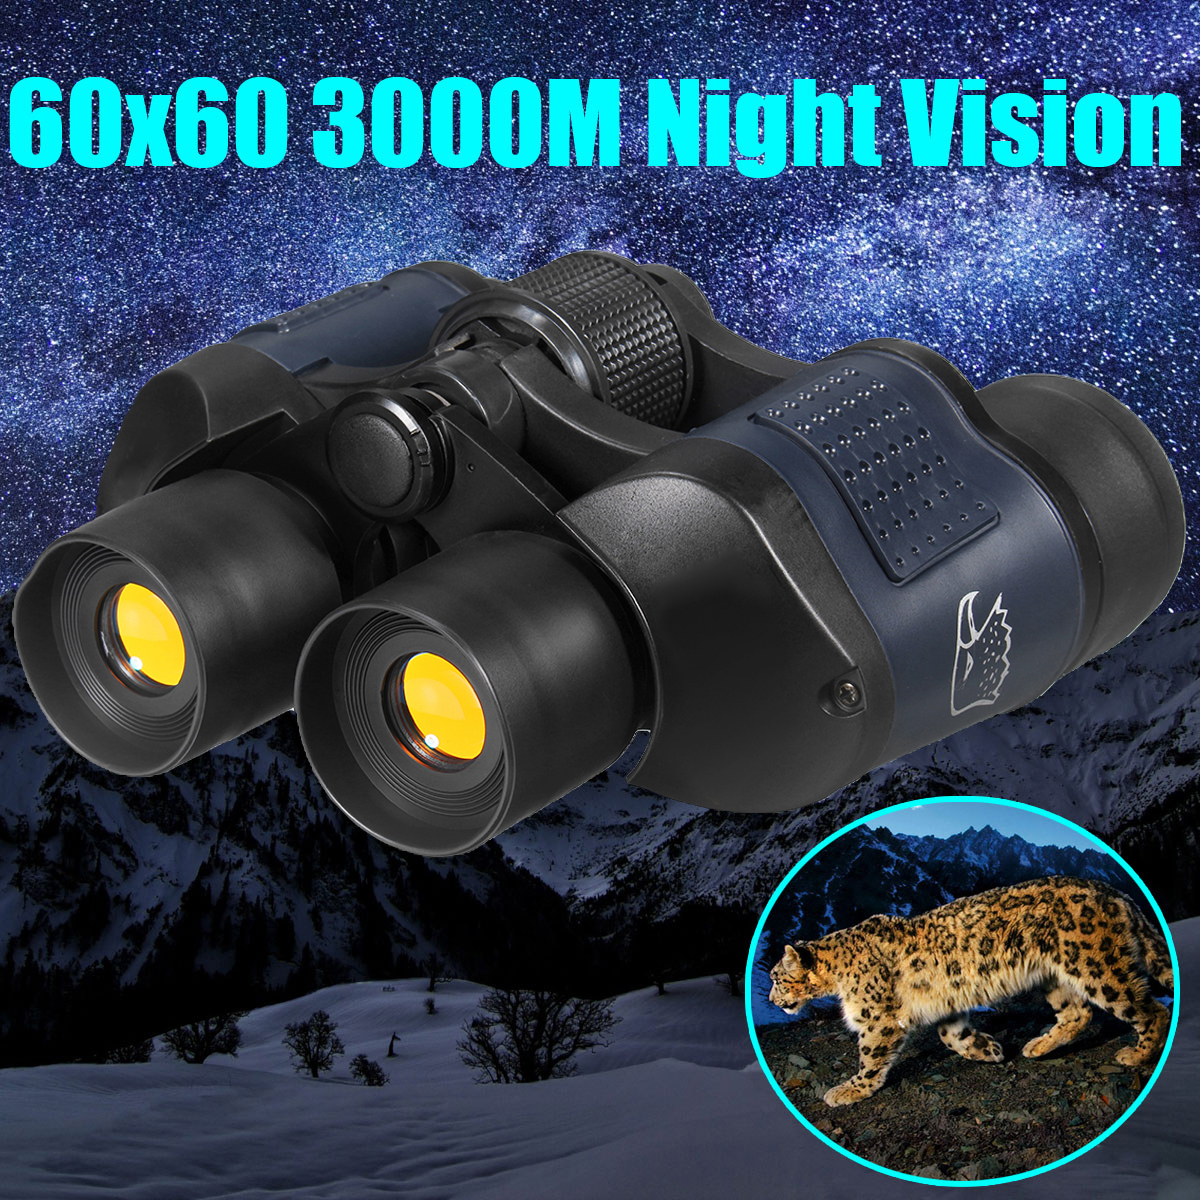 60X60 Optical Telescope Night Vision Binoculars High Clarity 3000M binocular Spotting scope outdoor Hunting sports eyepiece binocular telescope non infrared night vision binoculars camping hunting spotting scope telescopes support drop shipping